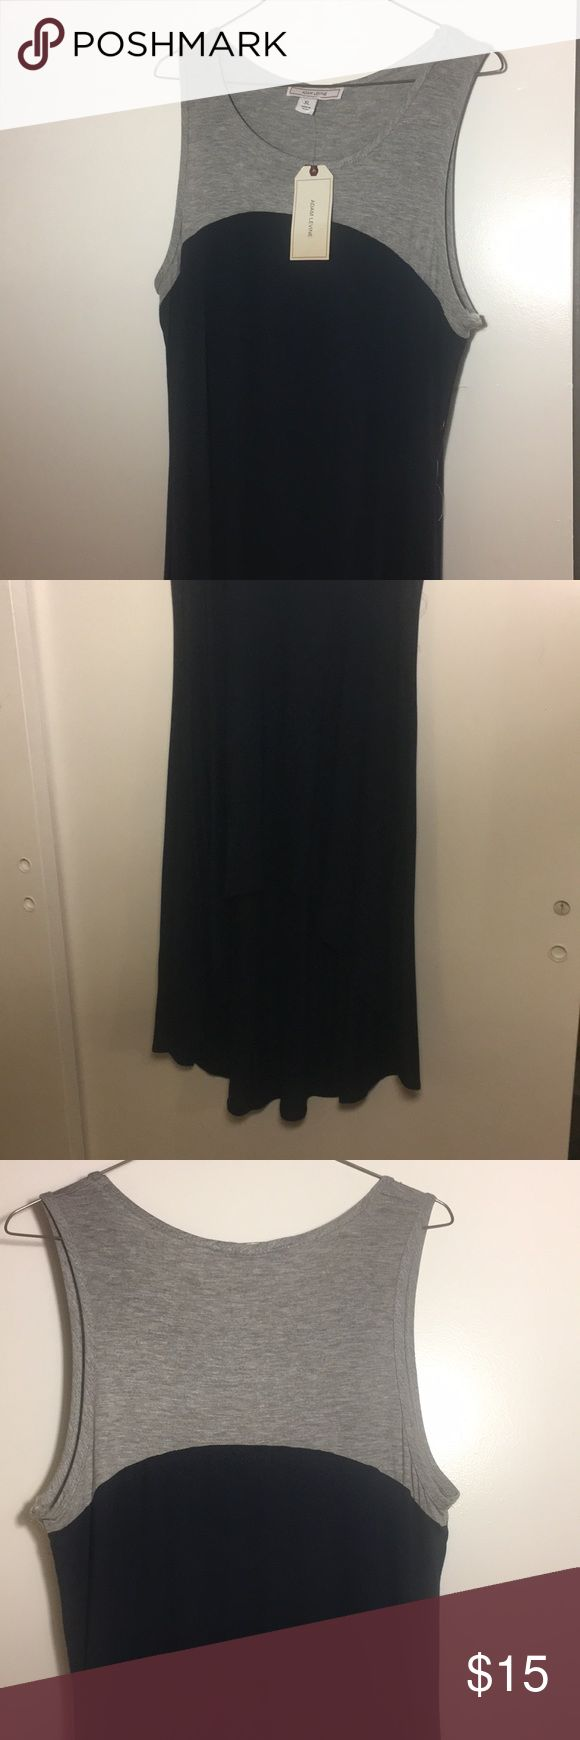 Adam Lavigne Summer/Fall dress This Two toned dress with light gray and navy blue is perfect for Summer and Fall styles. It's a high-low dress that pairs perfectly with a leather blazer and shoes or a cute pair of sandals. Adam Levine Collection Dresses High Low